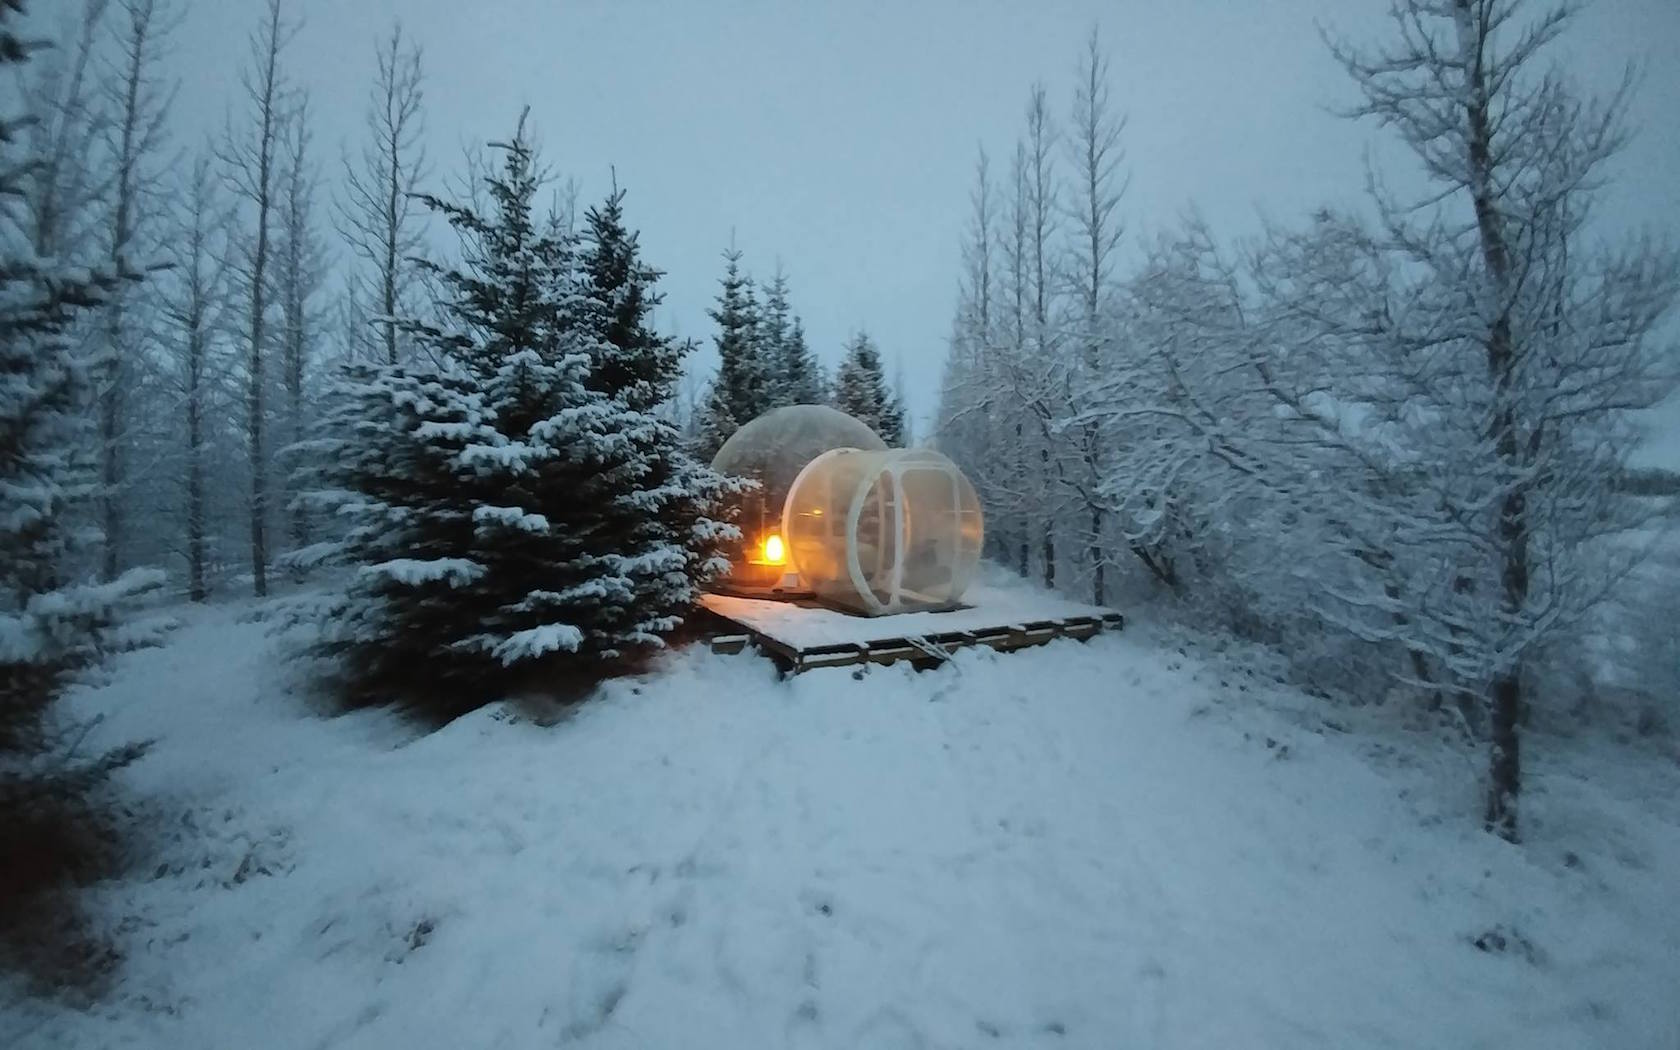 Iceland Has A Buubble Hotel Hidden In A Secluded Forest